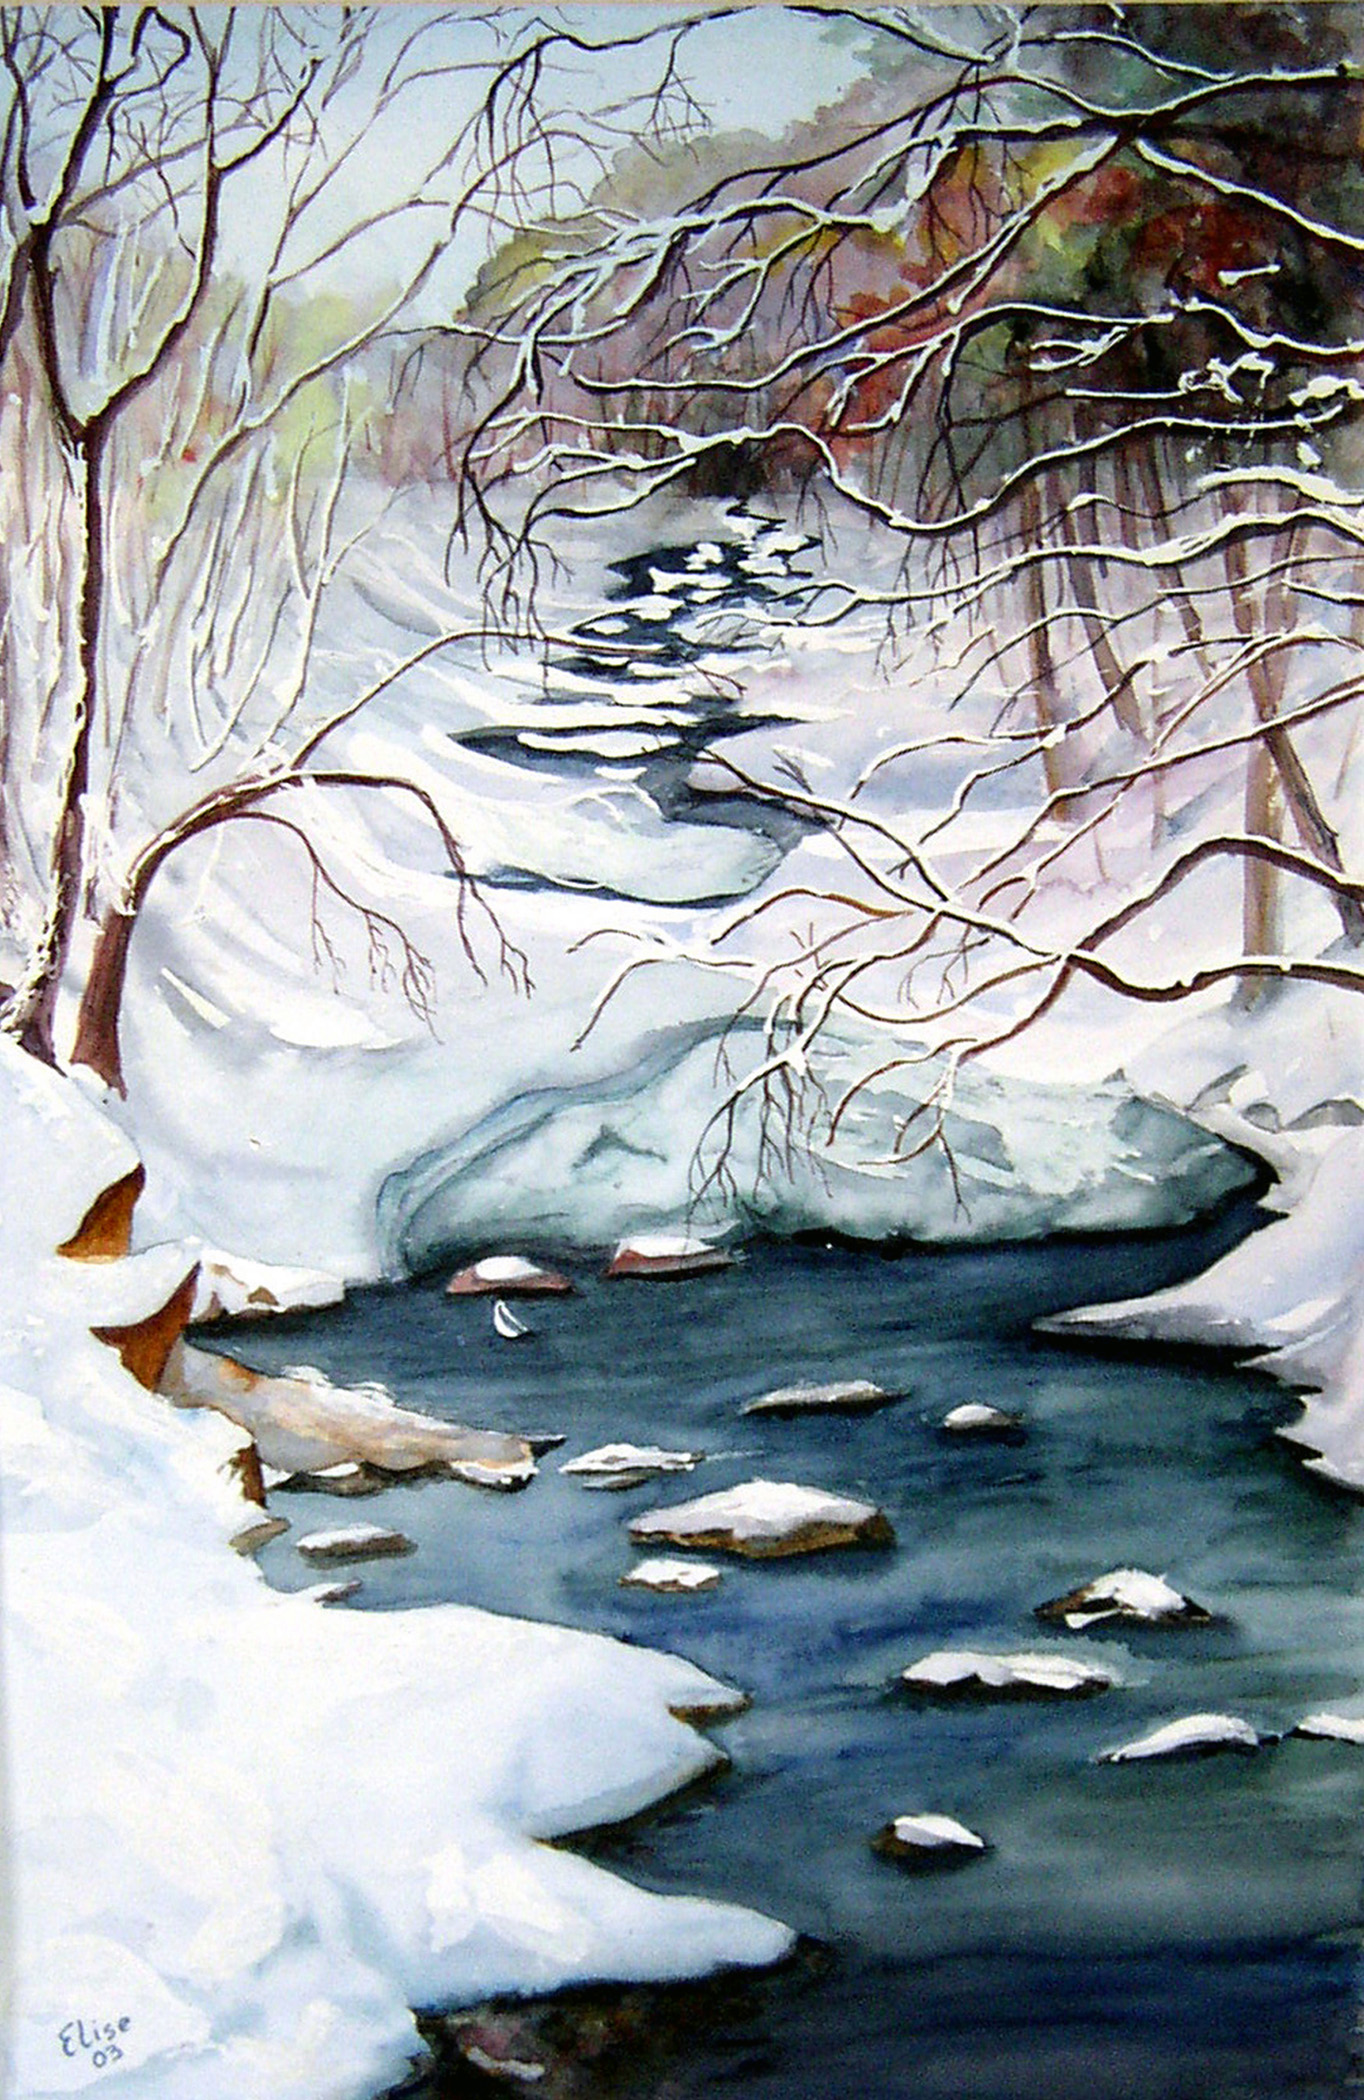 ArticleImage- Anchor Ice, A watercolor painting by Elise Hornbeck